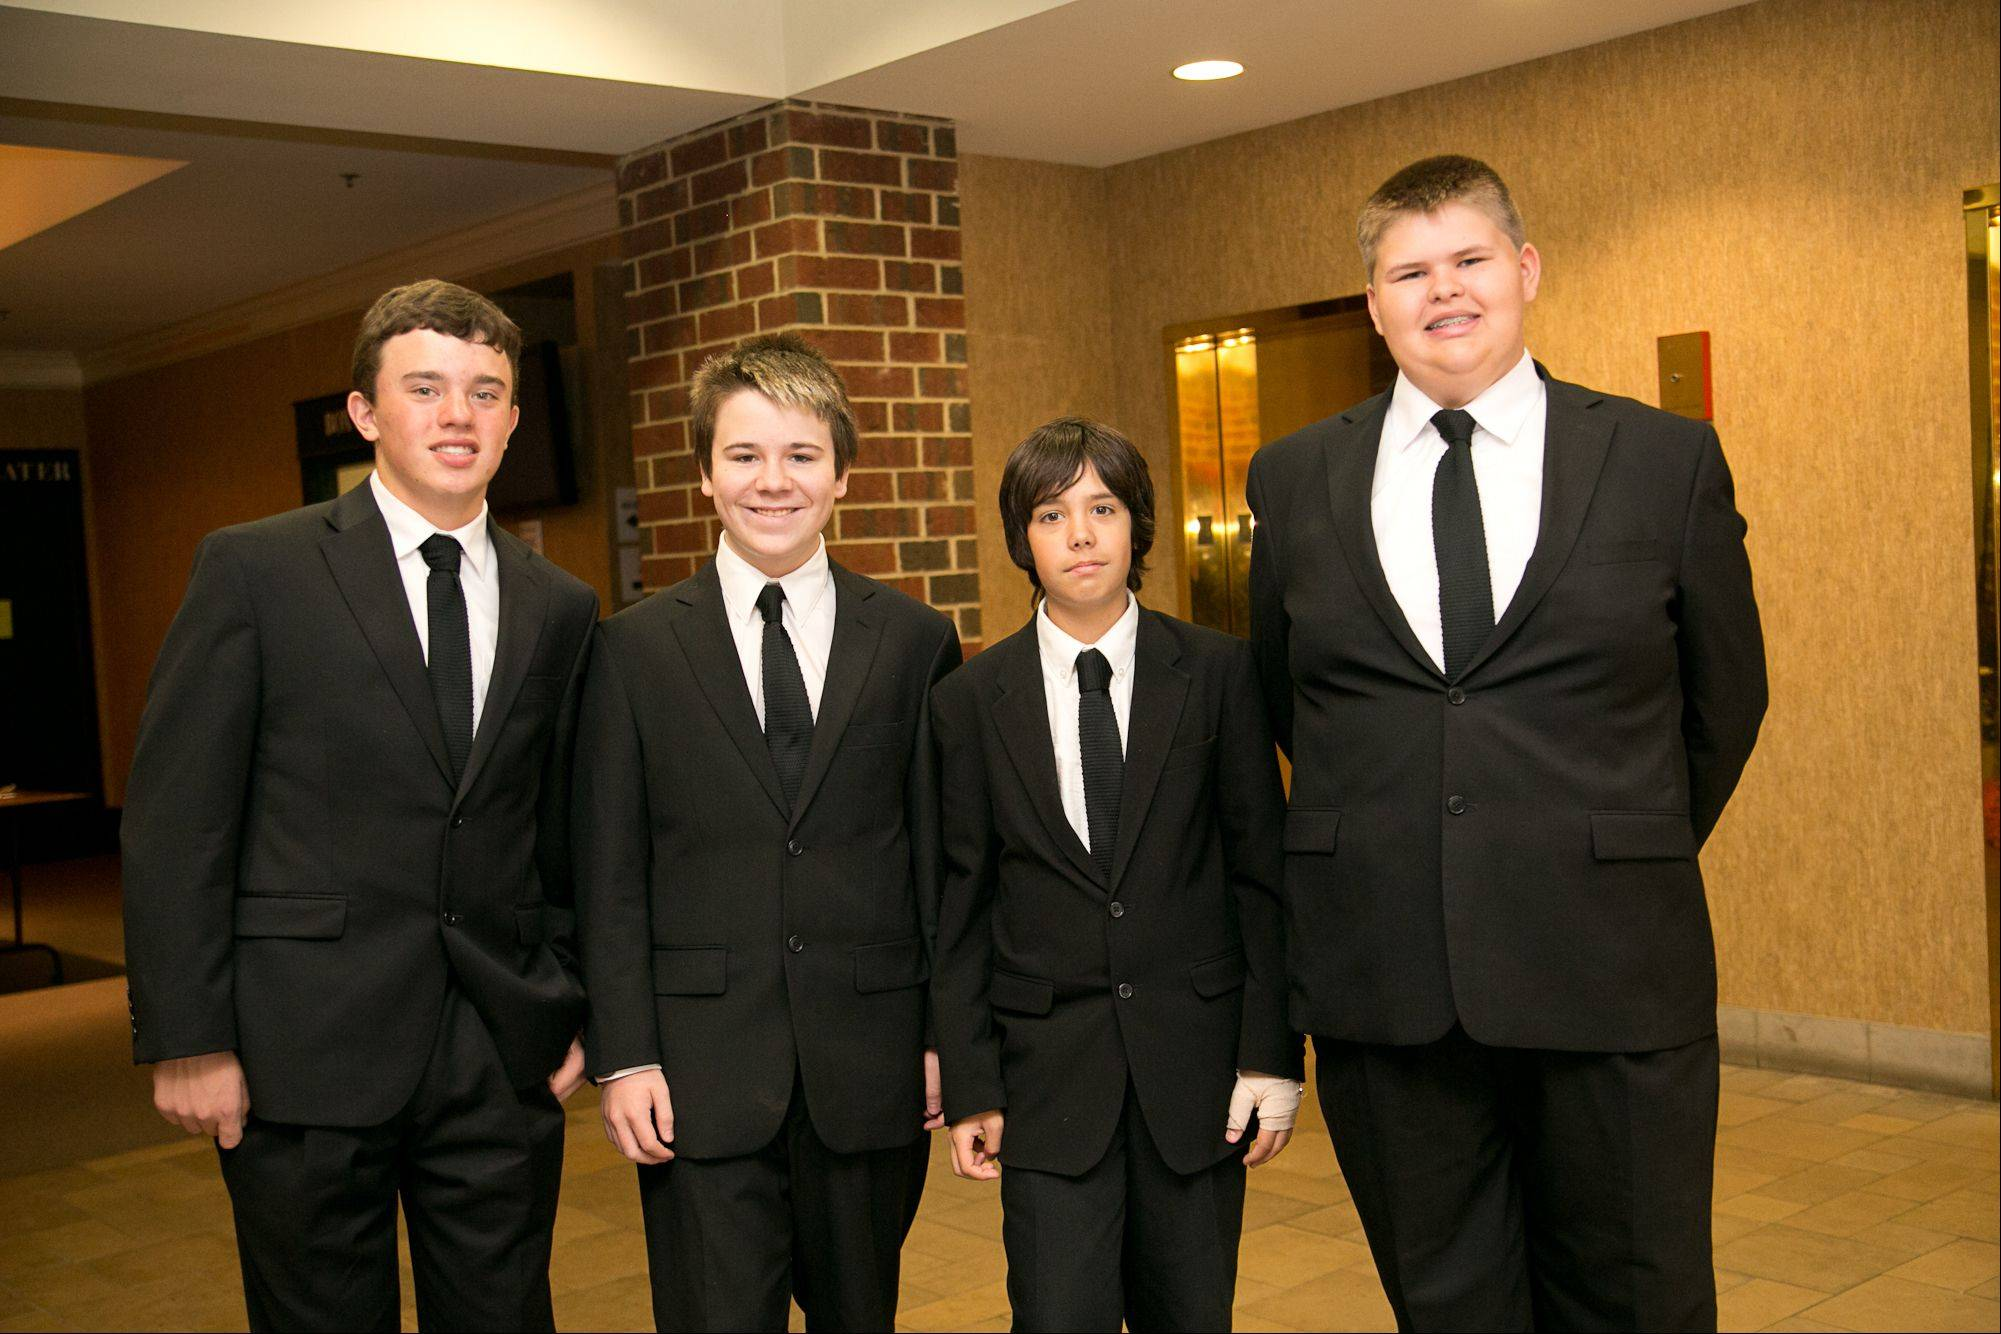 Merseyside -- featuring, from left, Patrick Ryan of Wheeling, Quinn Fitzsimons of Arlington Heights, Joel Smith of Arlington Heights and Sean Ryan of Arlington Heights -- is one of the Top 30 finalists in Suburban Chicago's Got Talent.